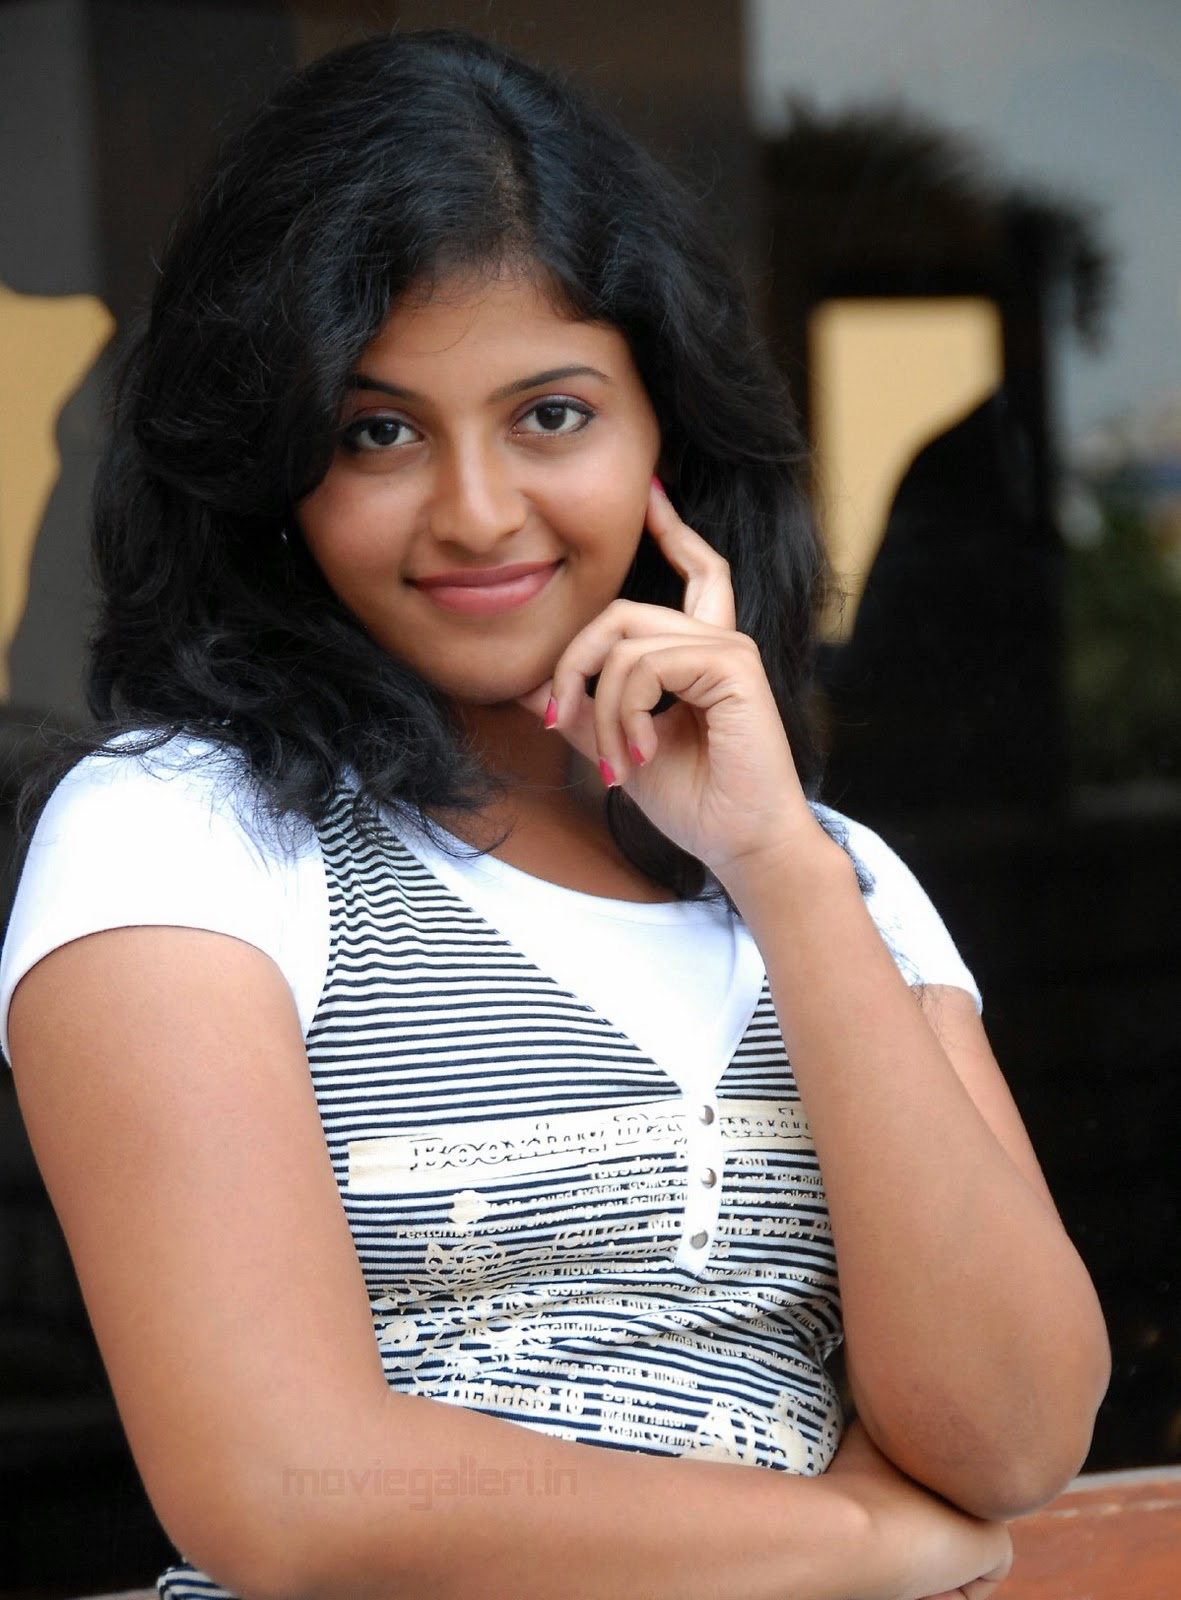 http://3.bp.blogspot.com/_eewr1b1LpYA/TMO33Qo3aRI/AAAAAAAAJzY/t4bgmn-myKE/s1600/actress_anjali_latest_cute_wallpapers_stills_10.jpg